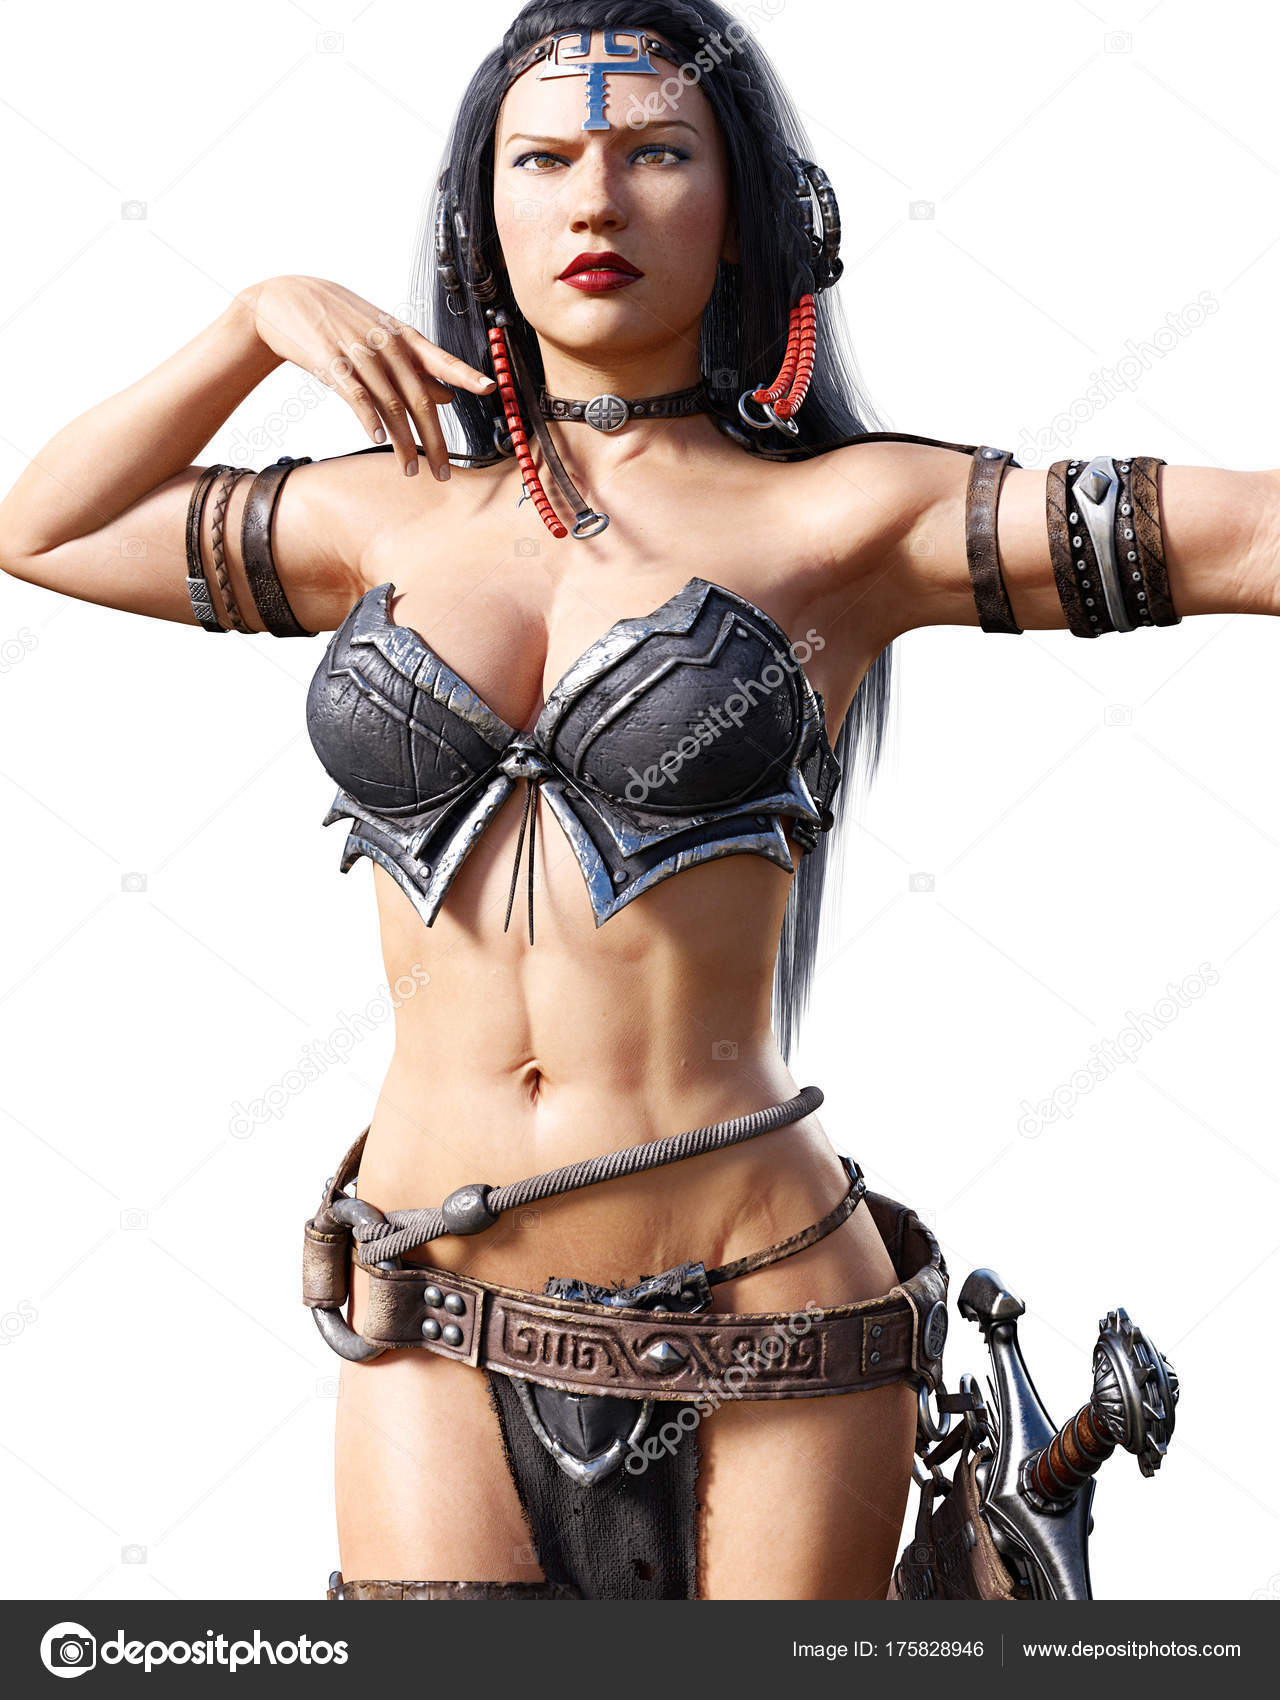 Warrior amazon woman with sword. Long dark hair. Muscular athletic body. Girl  standing candid provocative aggressive pose. Conceptual fashion art. 06df0905a